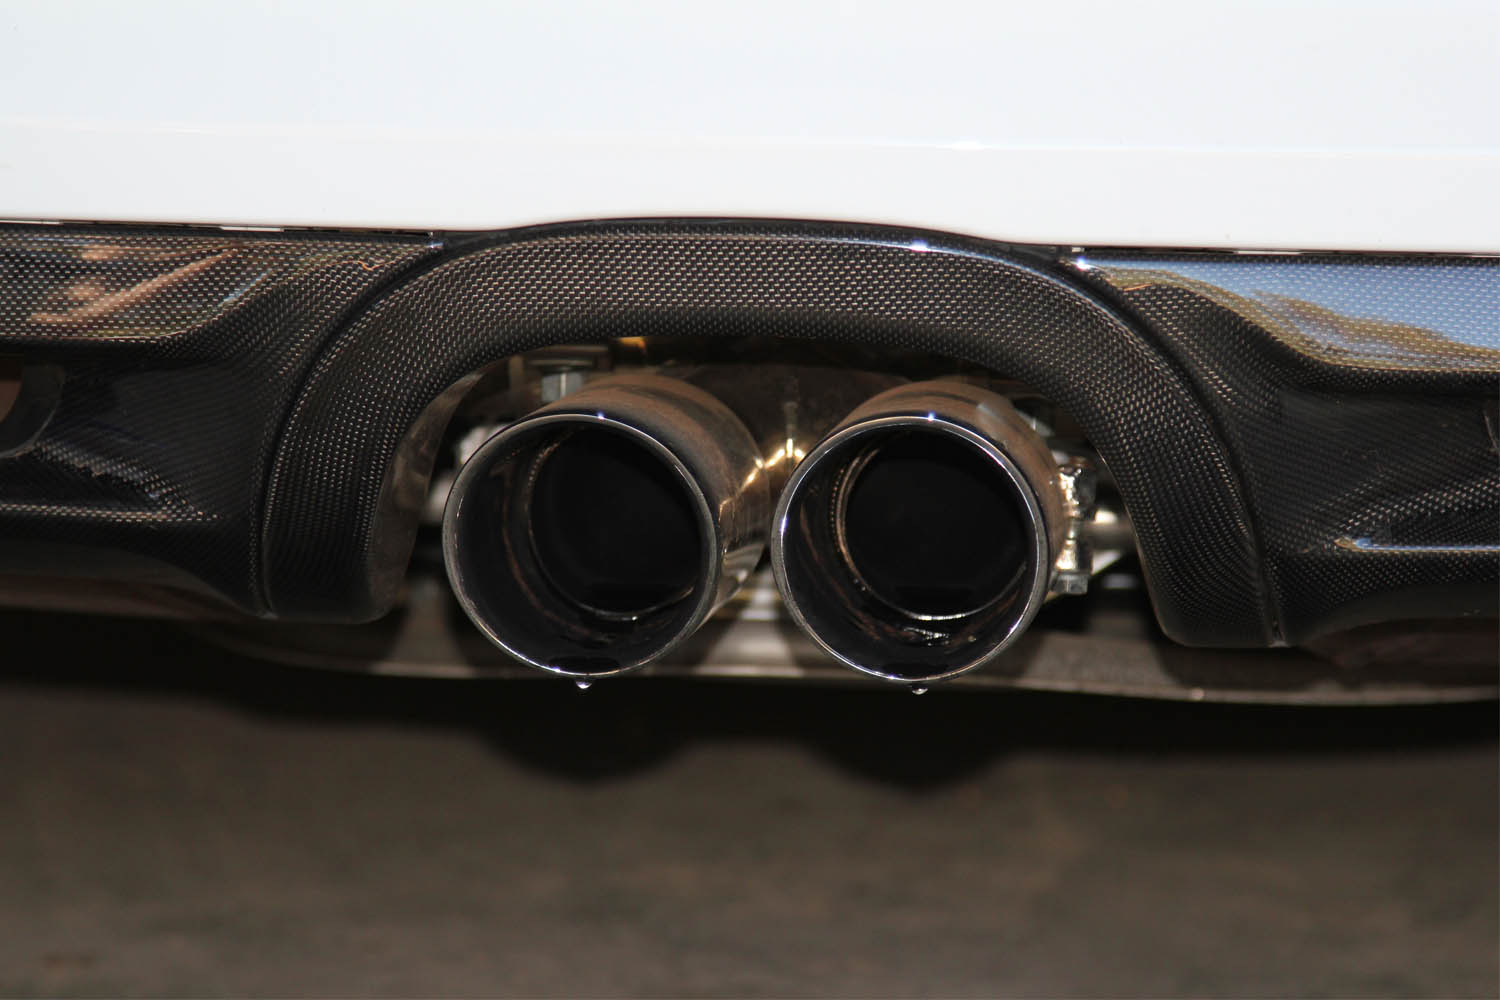 Porsche 981 Boxster Cayman Carbon Diffusor exhaust pipe surround cover rear bumper exterior carbon parts